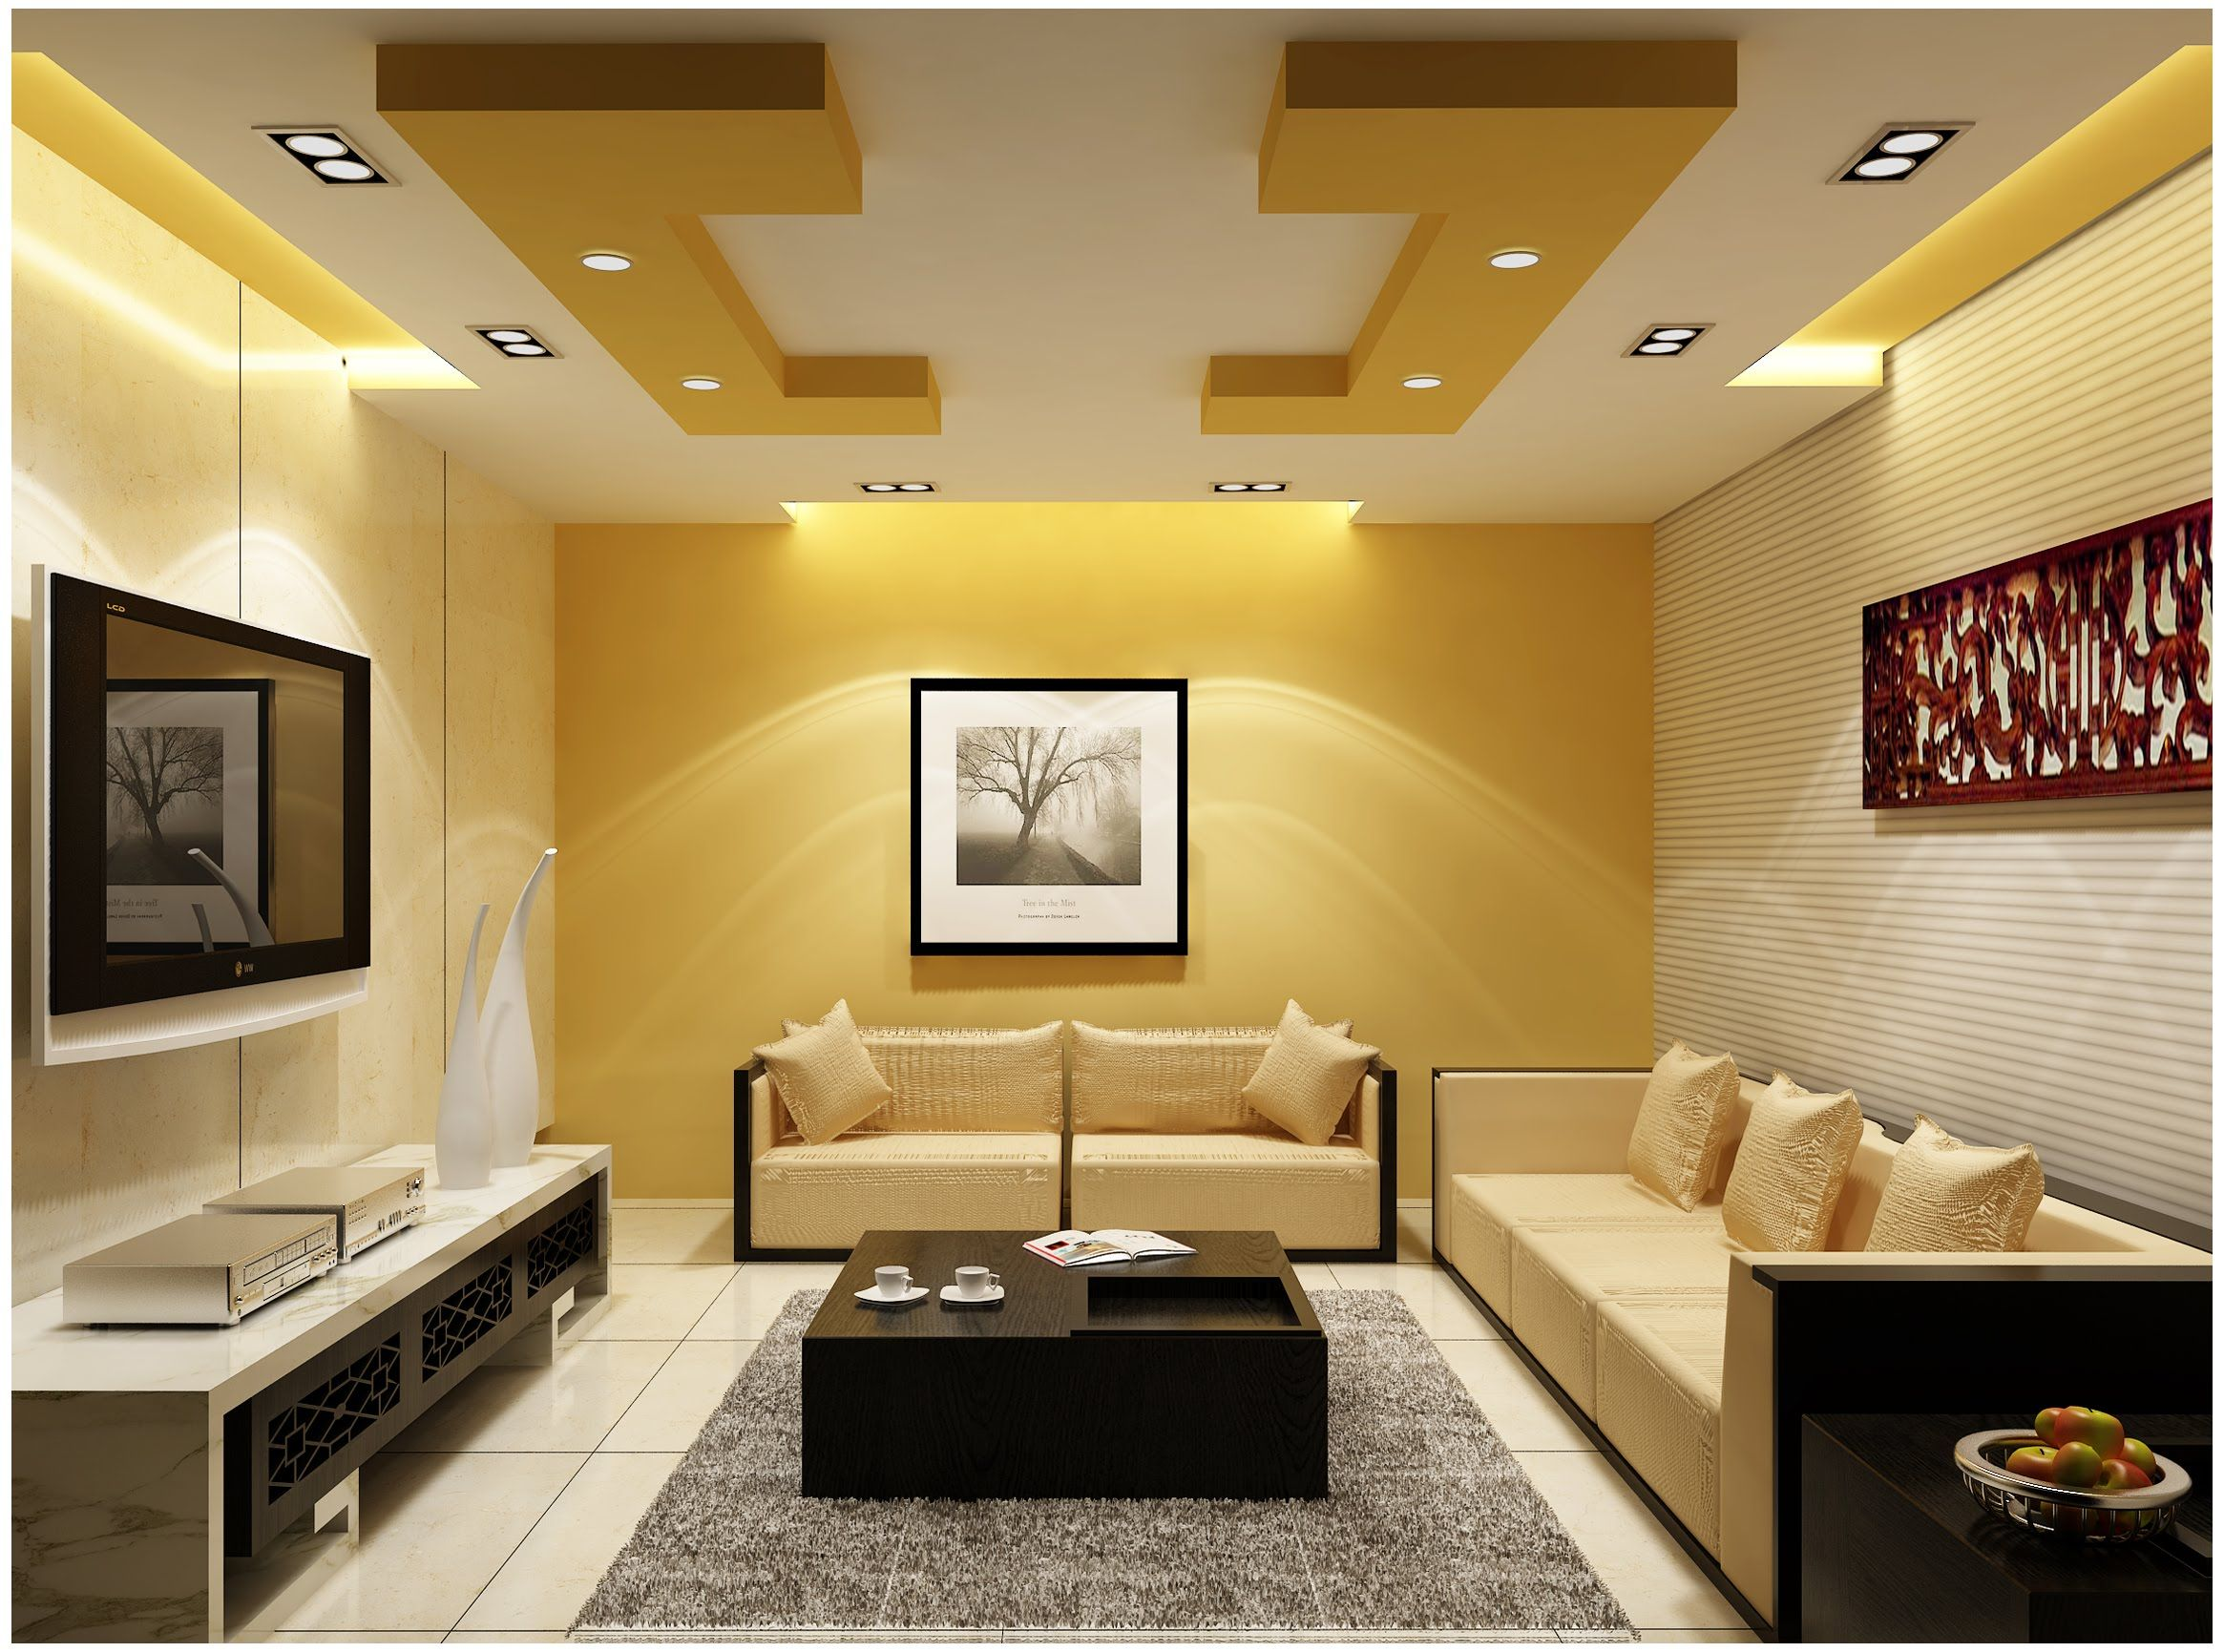 false ceiling design - Home Ceilings Designs